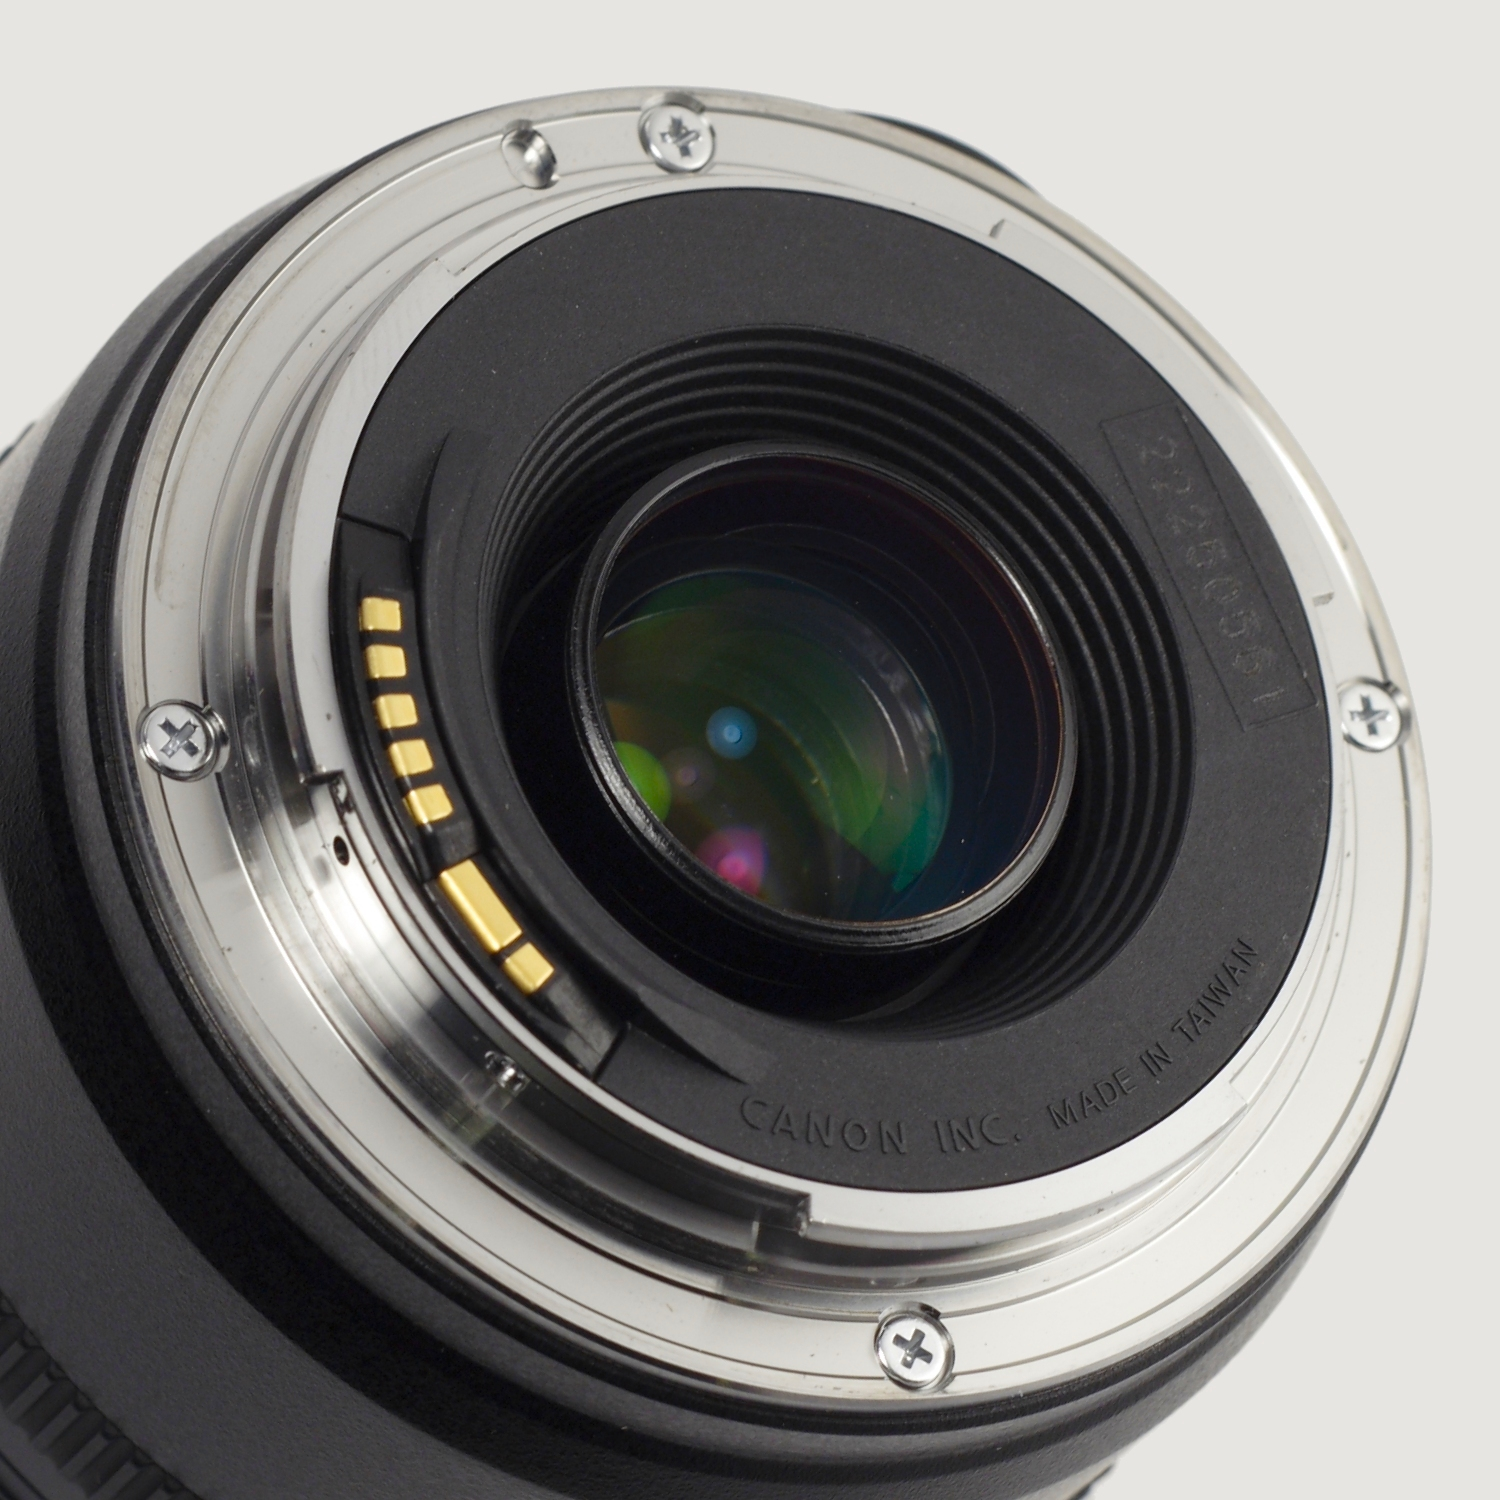 File:Canon EF lens mount.jpg - Wikipedia, the free encyclopedia